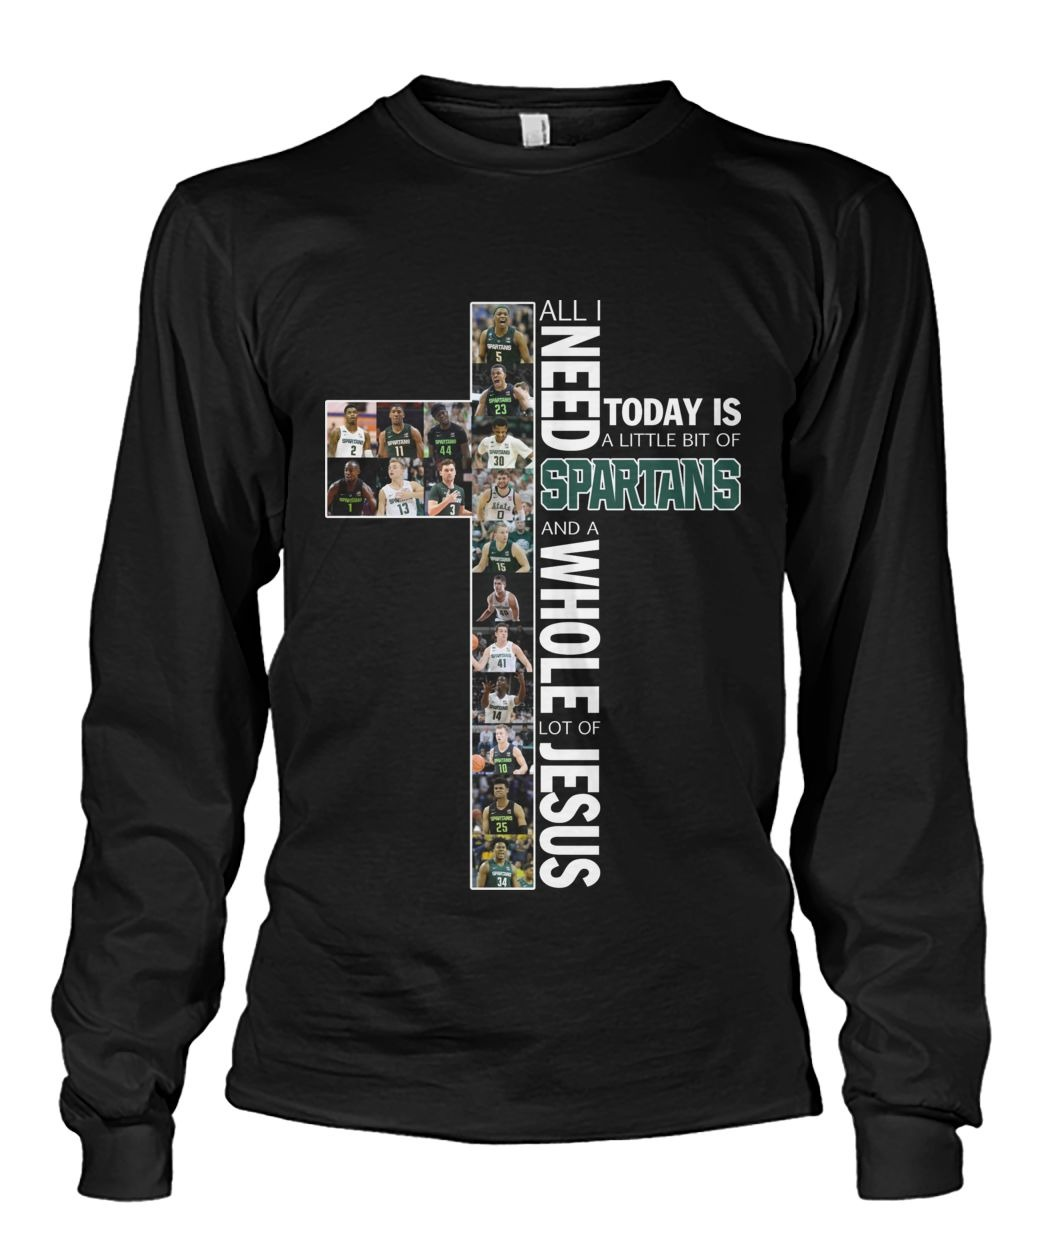 All i need today is a little bit of Spartans and a whole lot of Jesus long sleeved